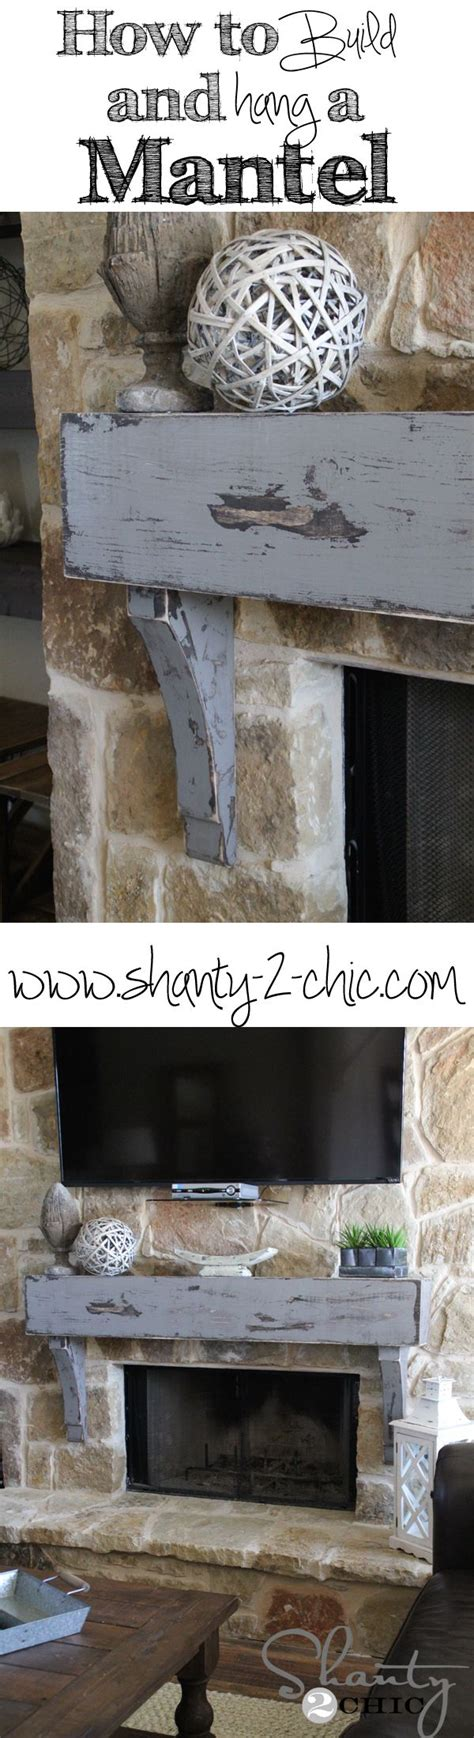 How To Attach Mantle To Brick Fireplace by How To Build A Custom Mantel And Attach It To A